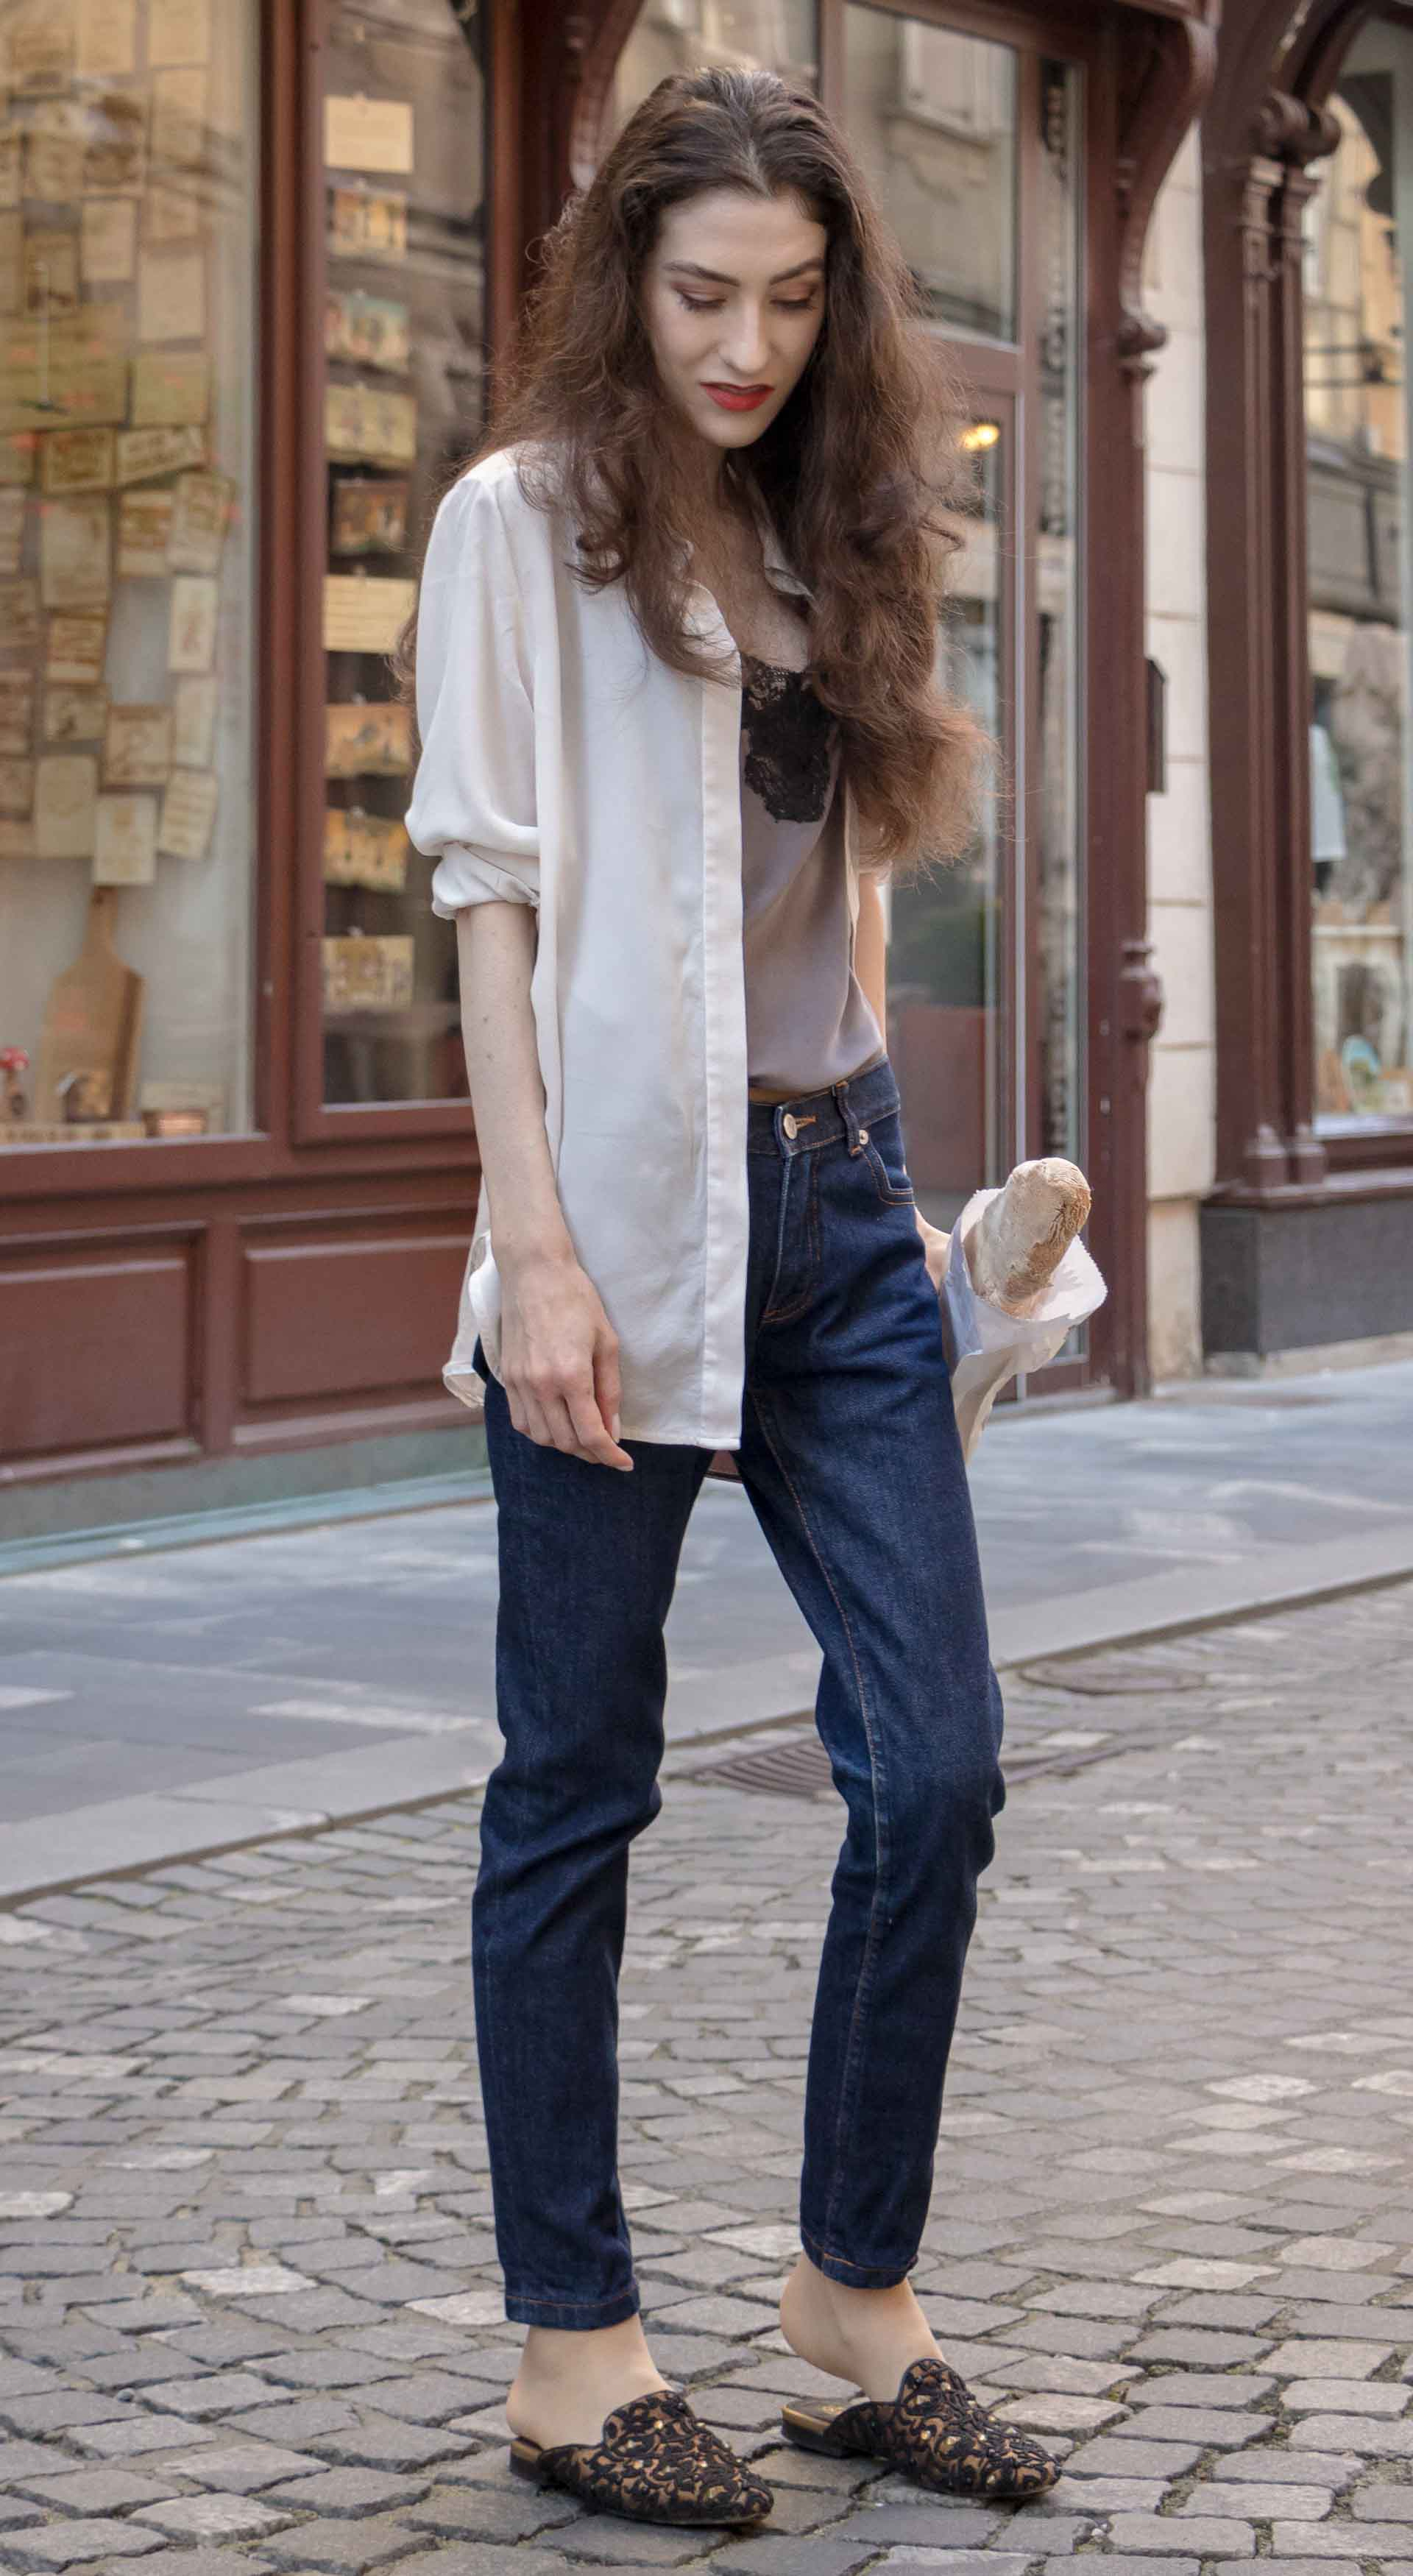 Fashion Blogger Veronika Lipar of Brunette from Wall Street wearing white transparent shirt with transparent back from Sandro Paris, grey silk slip top, A.P.C. dark denim jeans, mules, pink Furla shoulder bag, while holding a baguette on the street